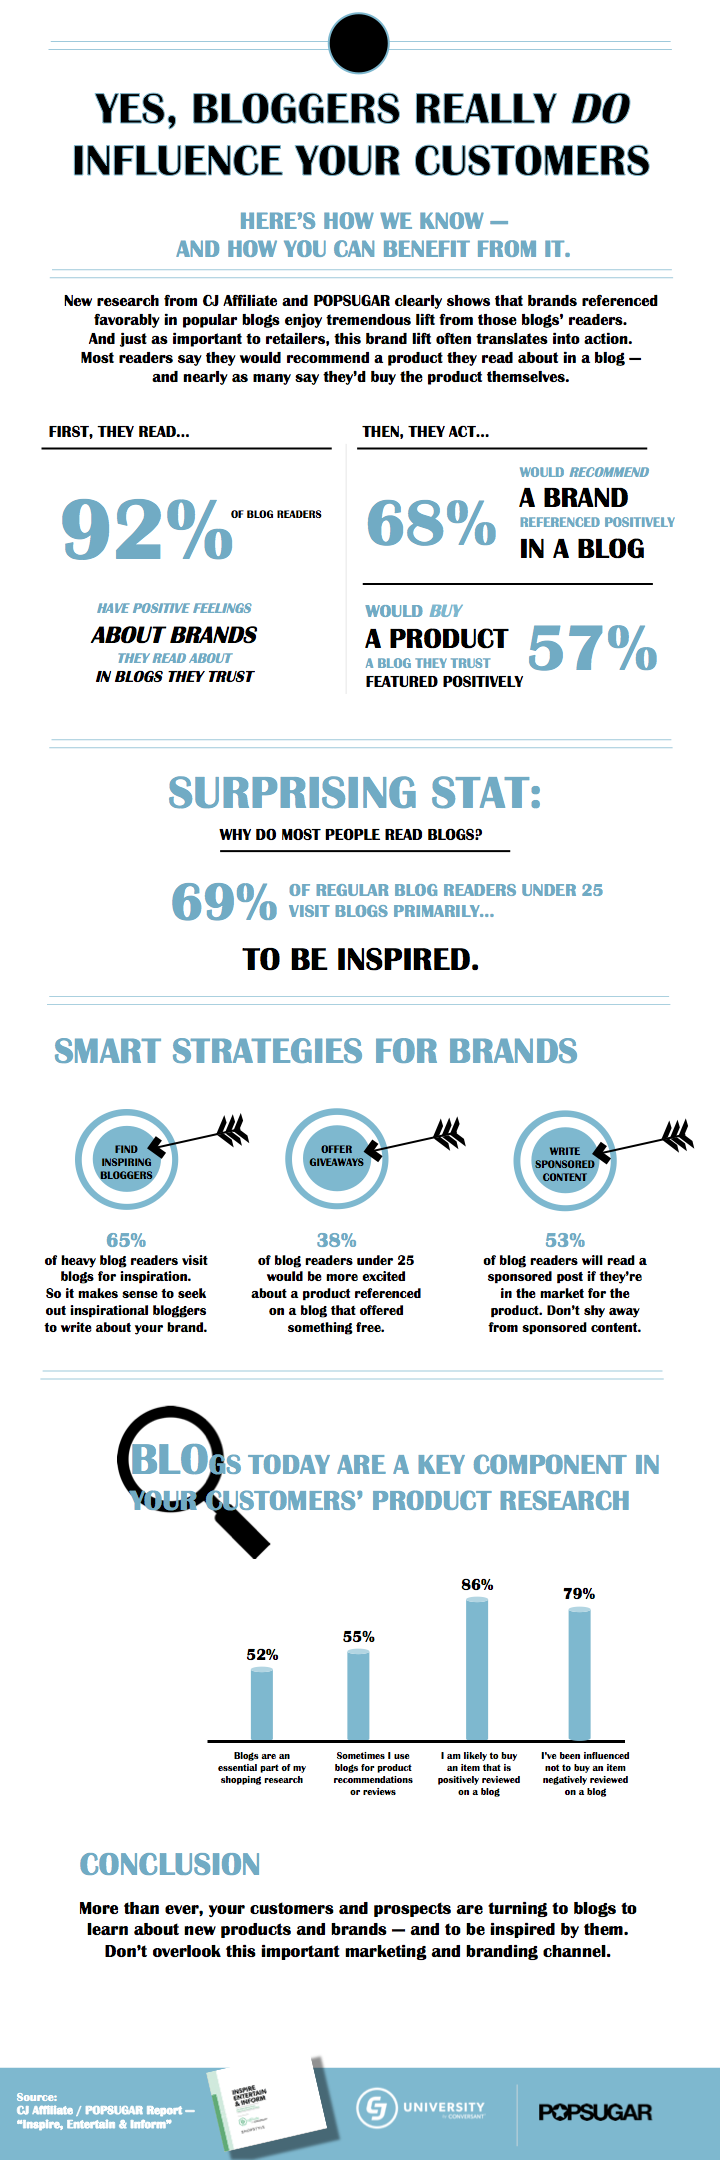 CJU Webinar Oct 2015 -- Blogger Influence -- Infographic-100115